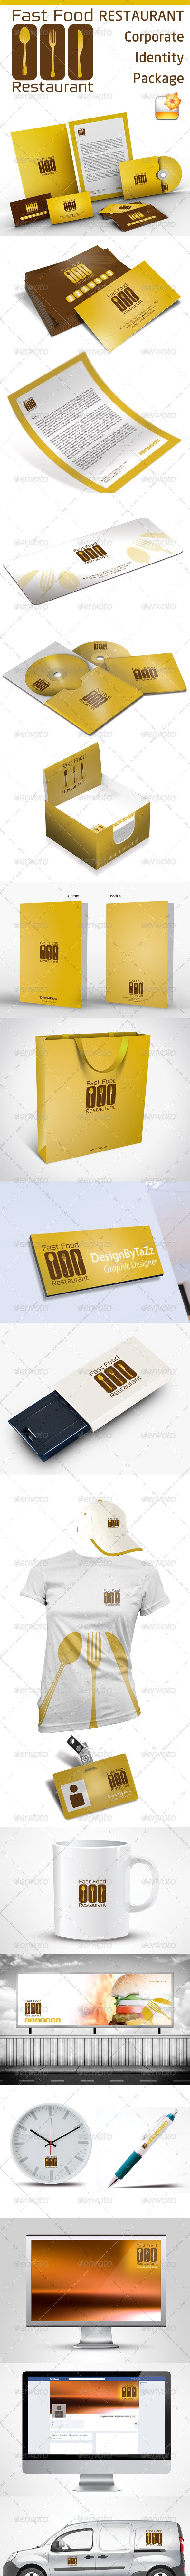 Fast Food & Restoran Corporate Identity Package - Stationery Print Templates